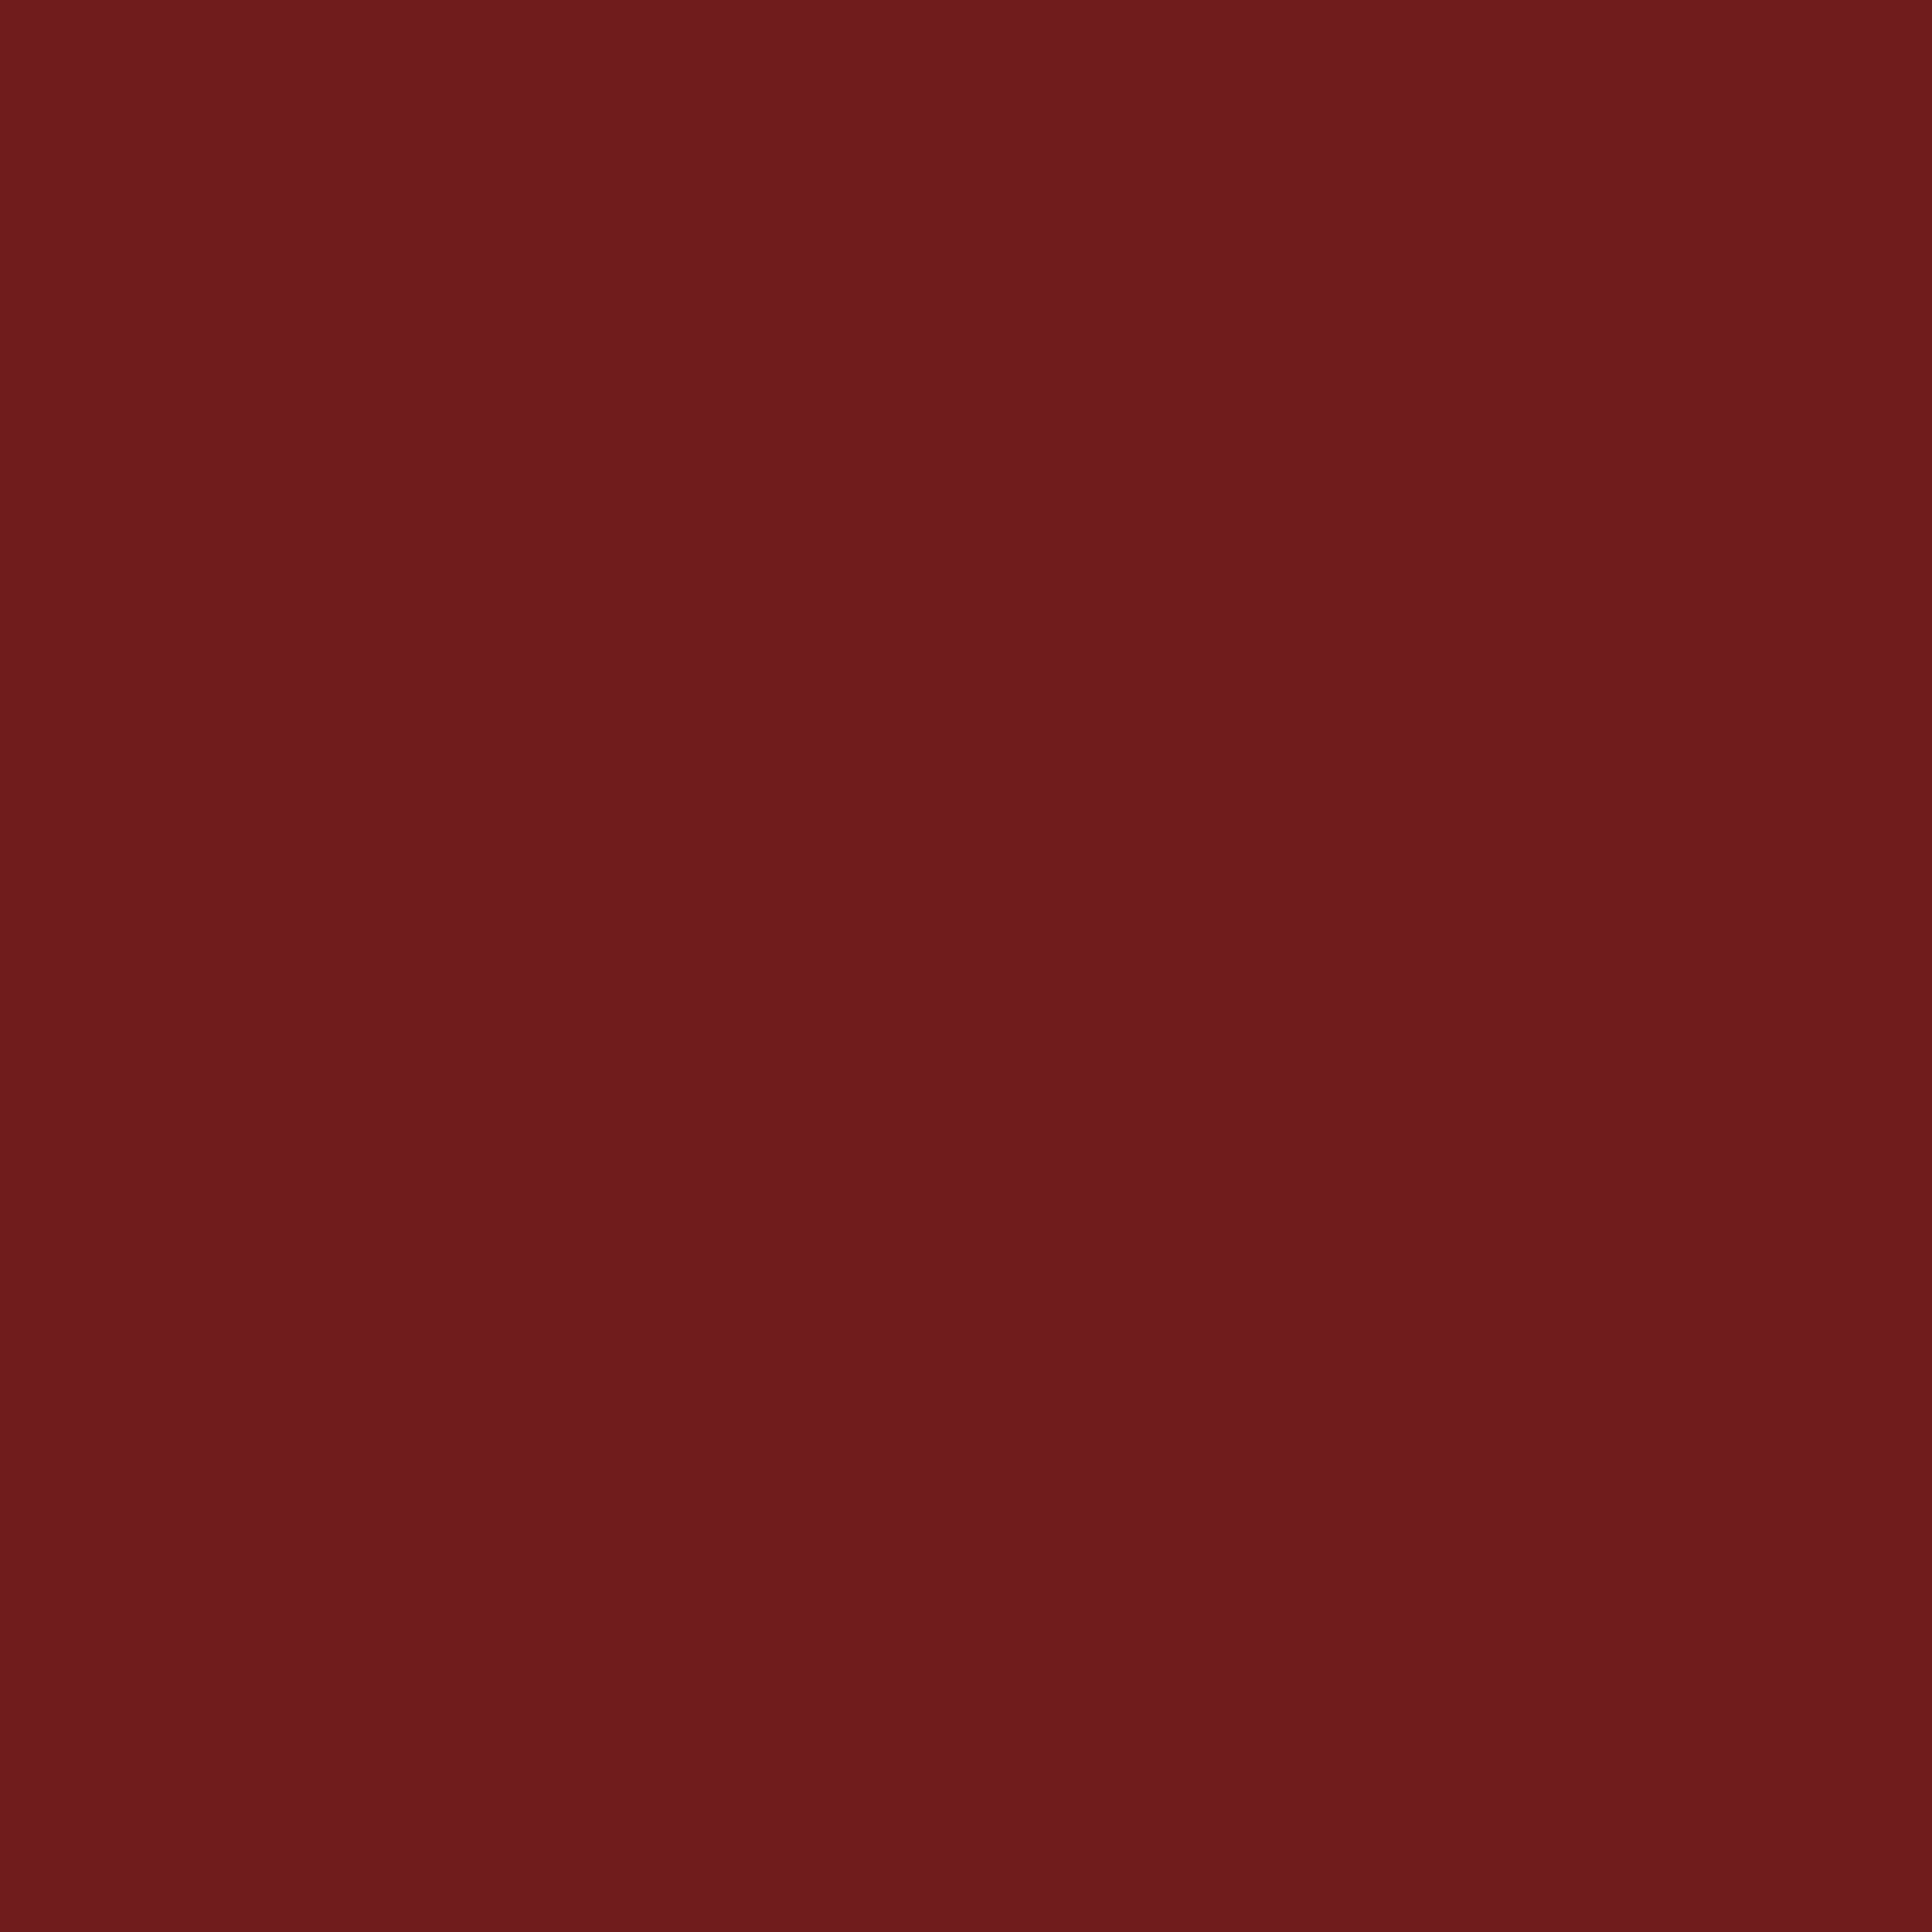 2732x2732 Persian Plum Solid Color Background 2732x2732